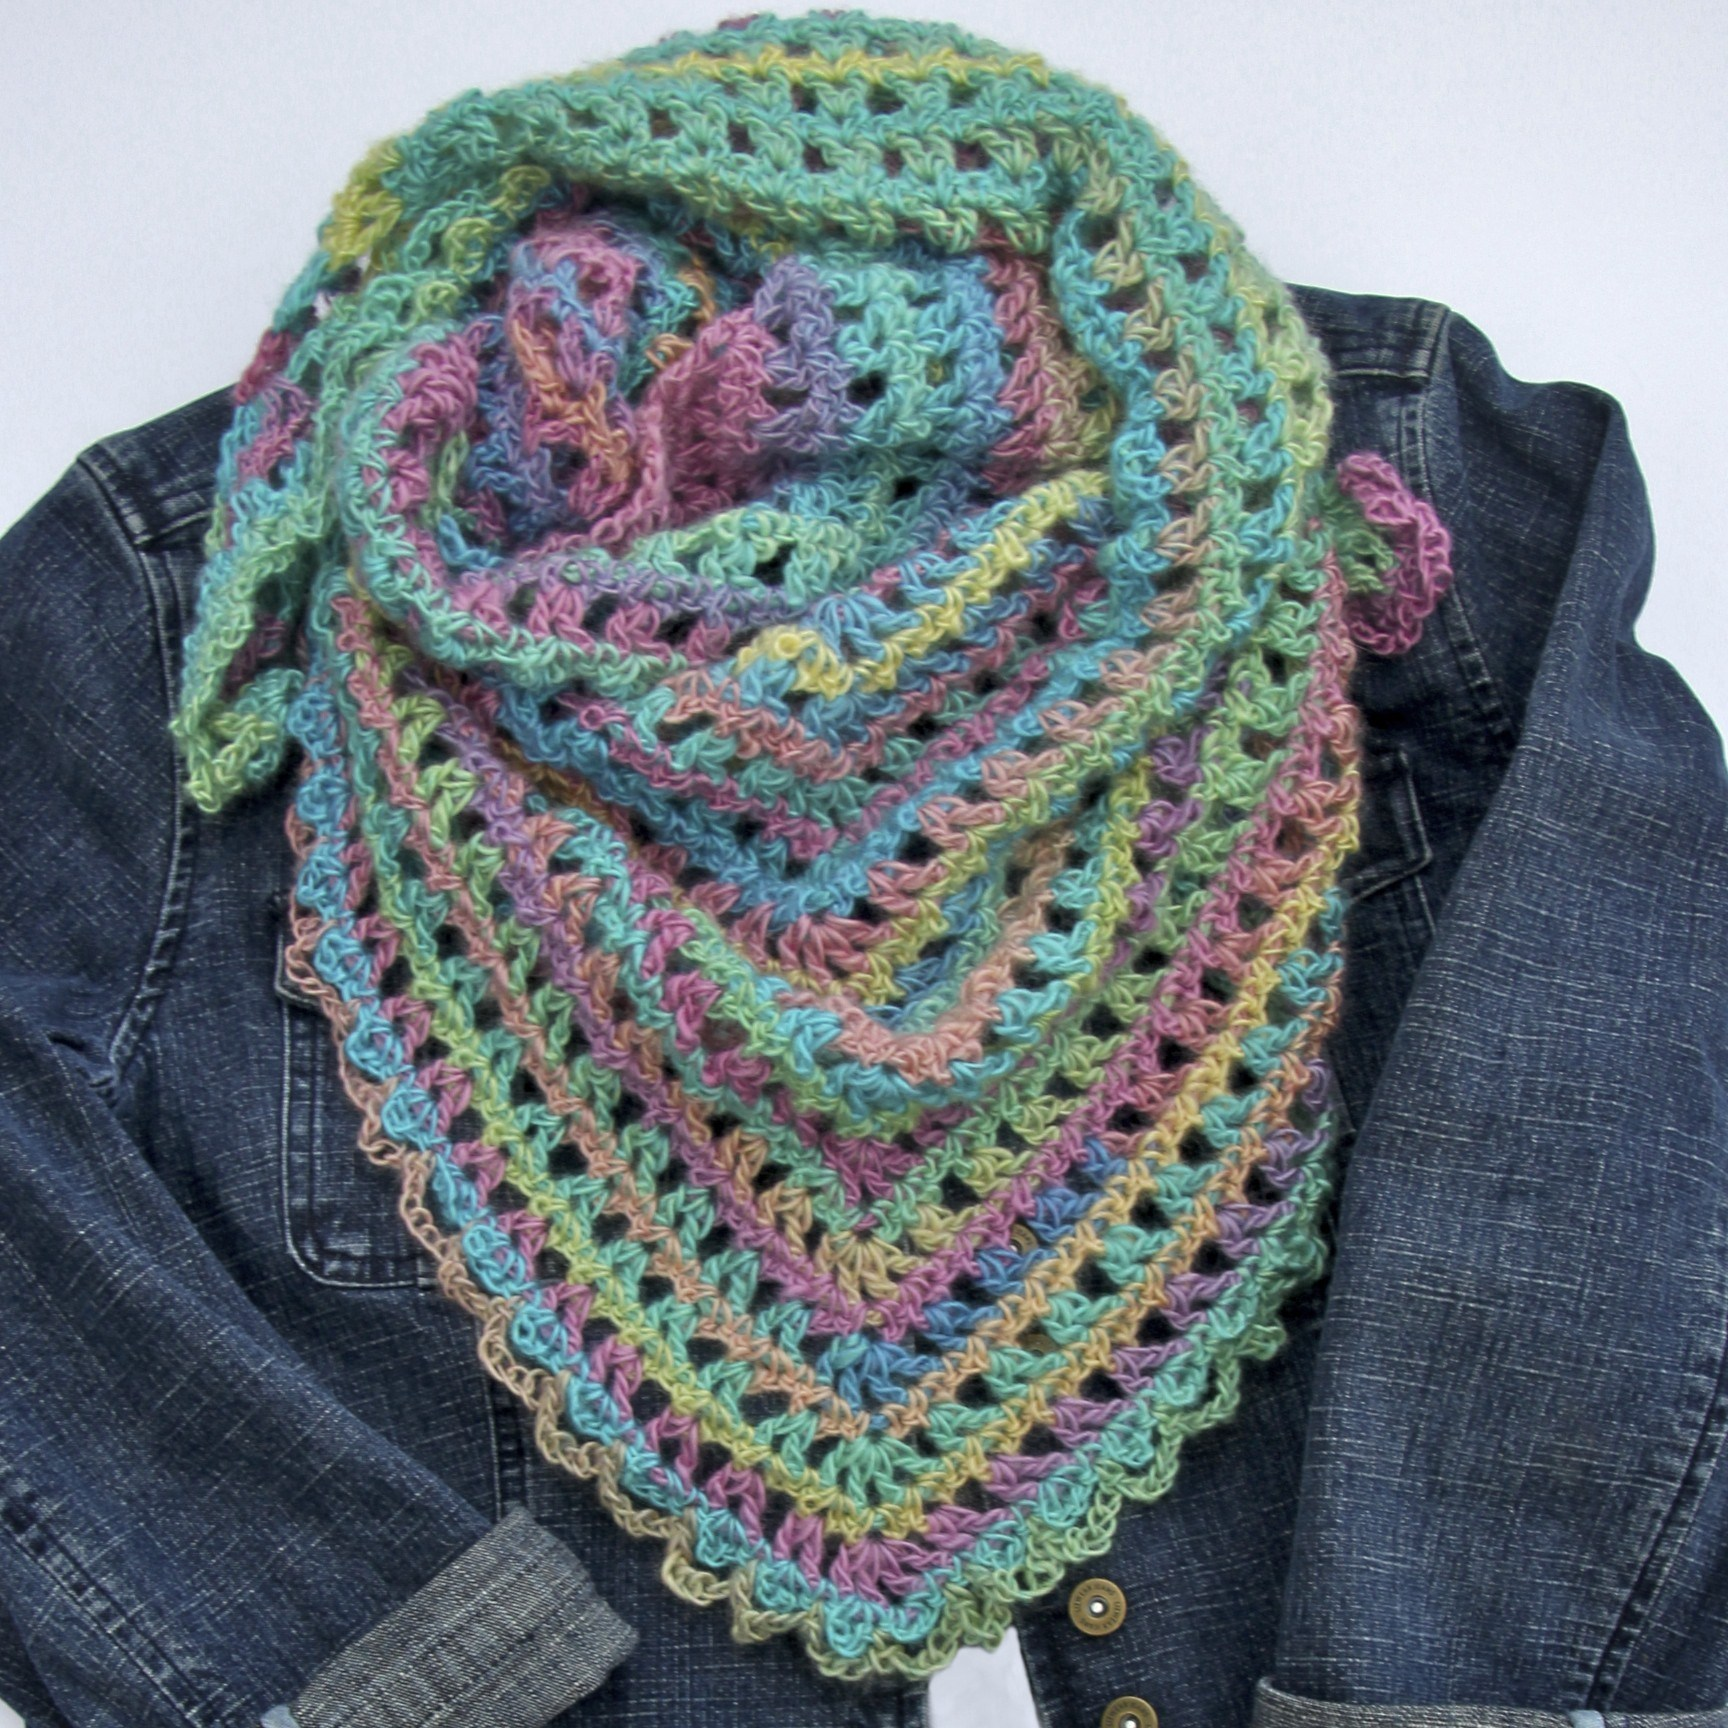 8 Crochet Scarf Free Patterns For Beginners